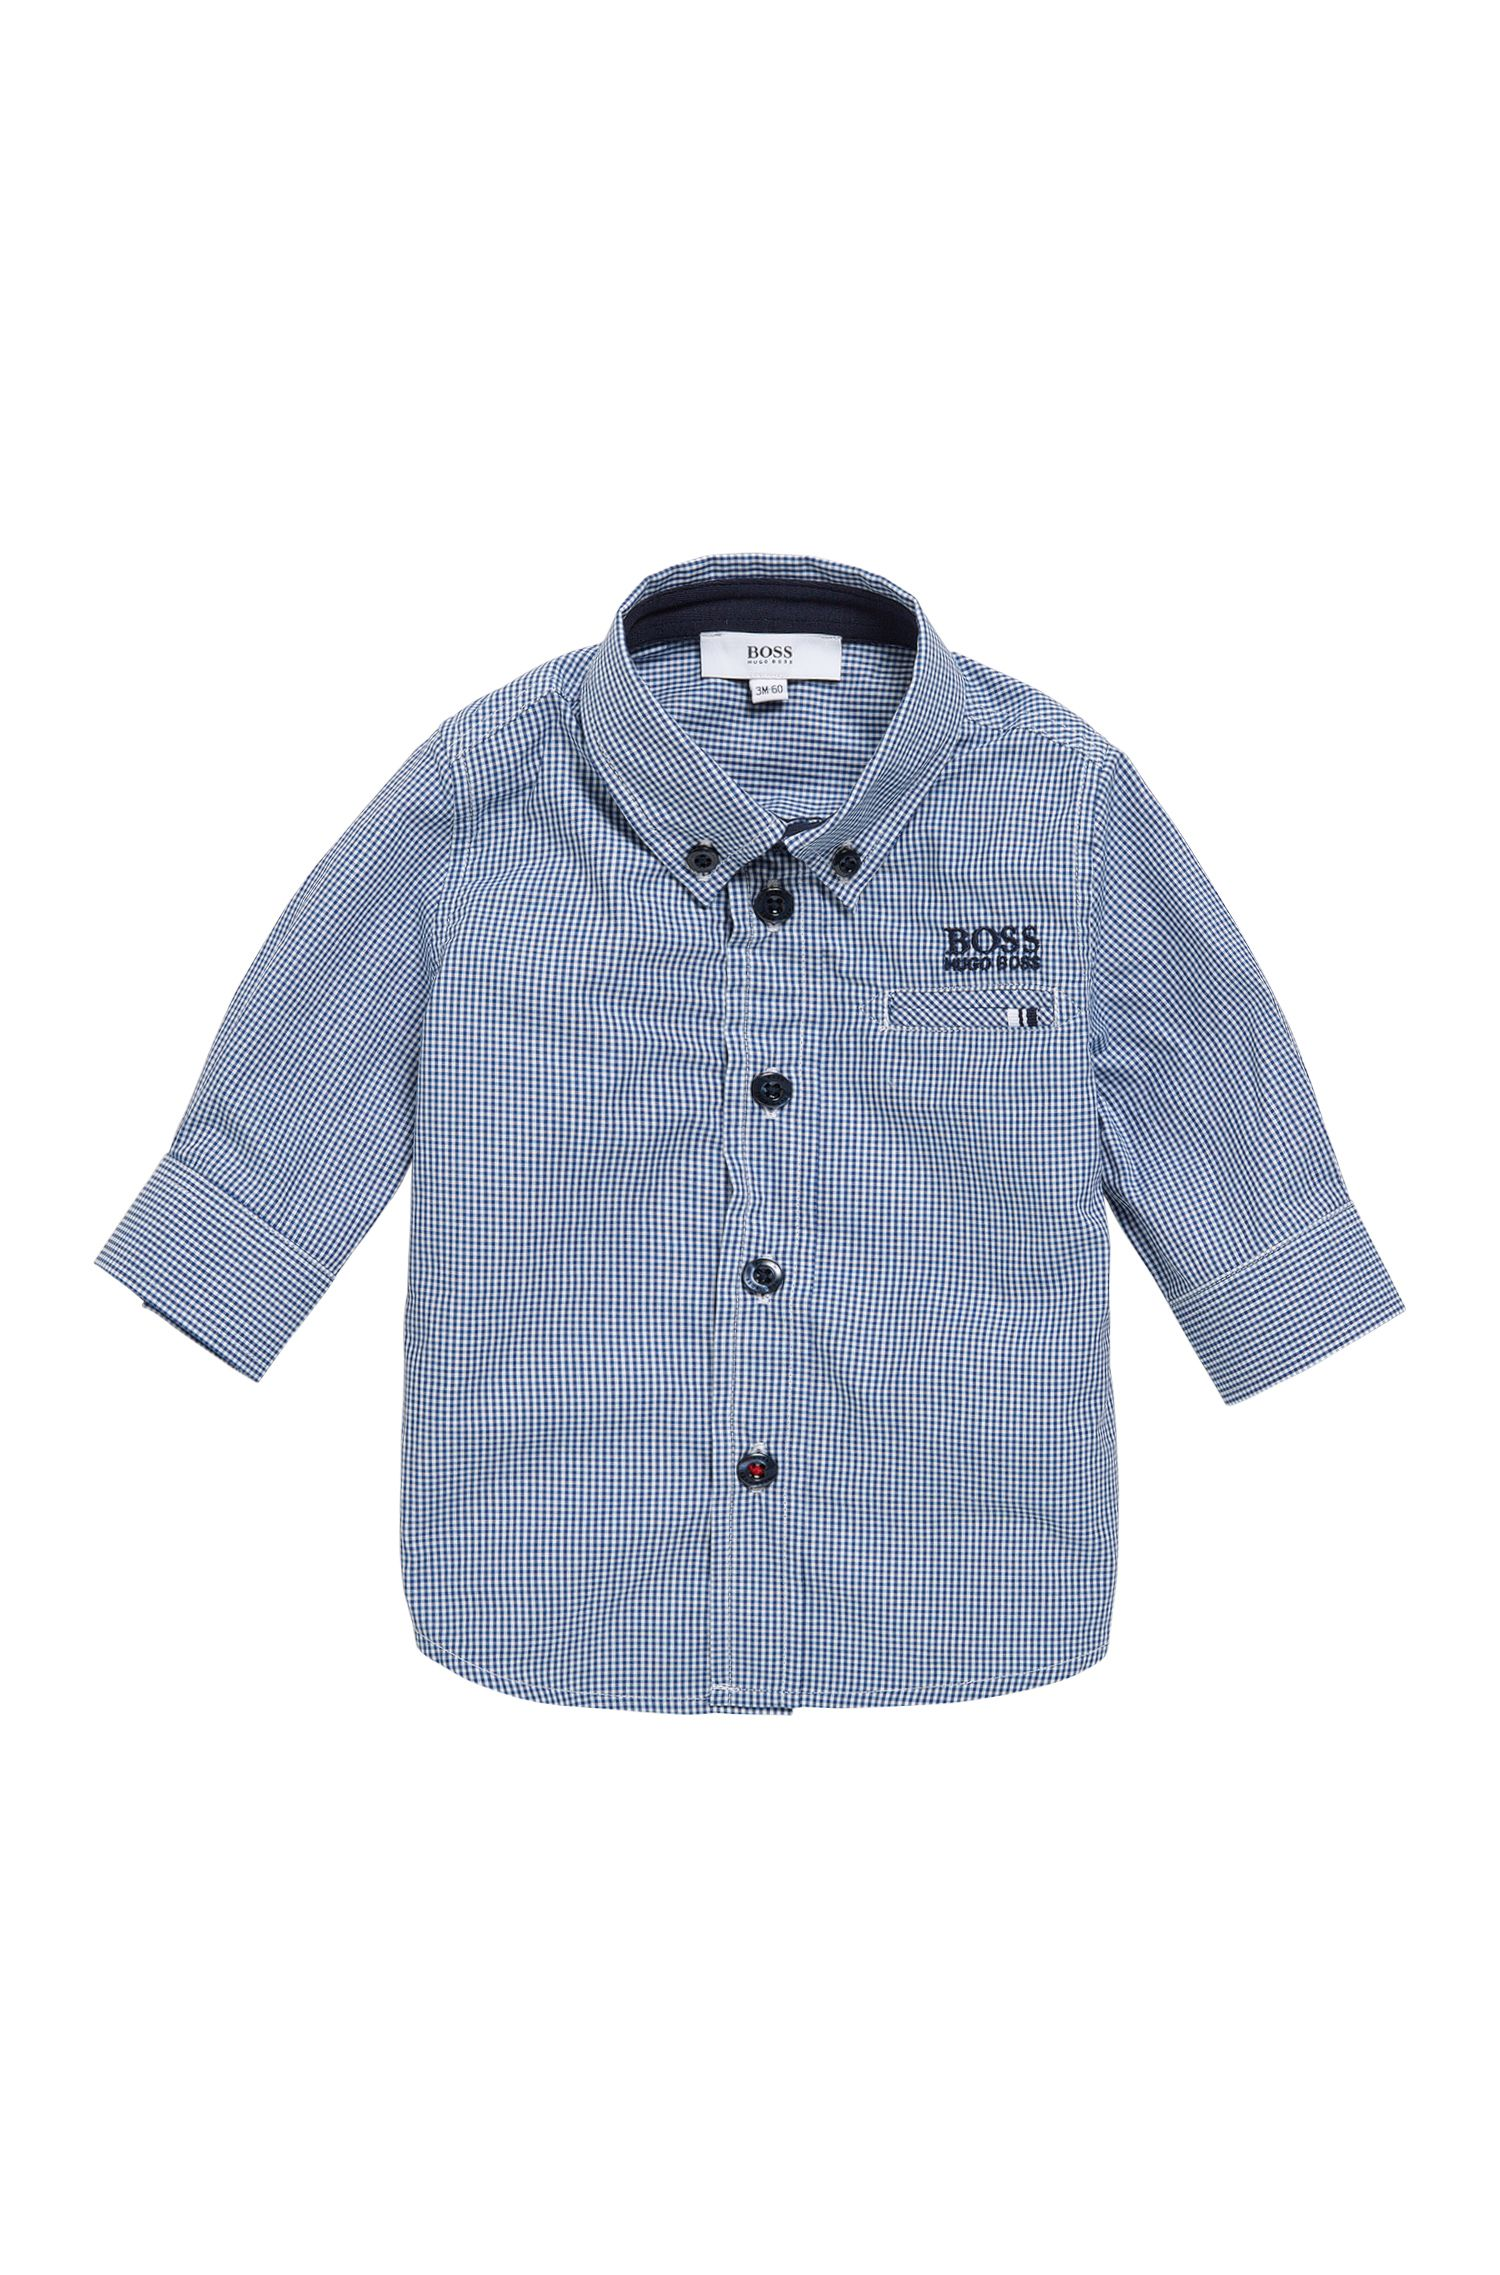 Kids' cotton shirt in a check design: 'J05509'